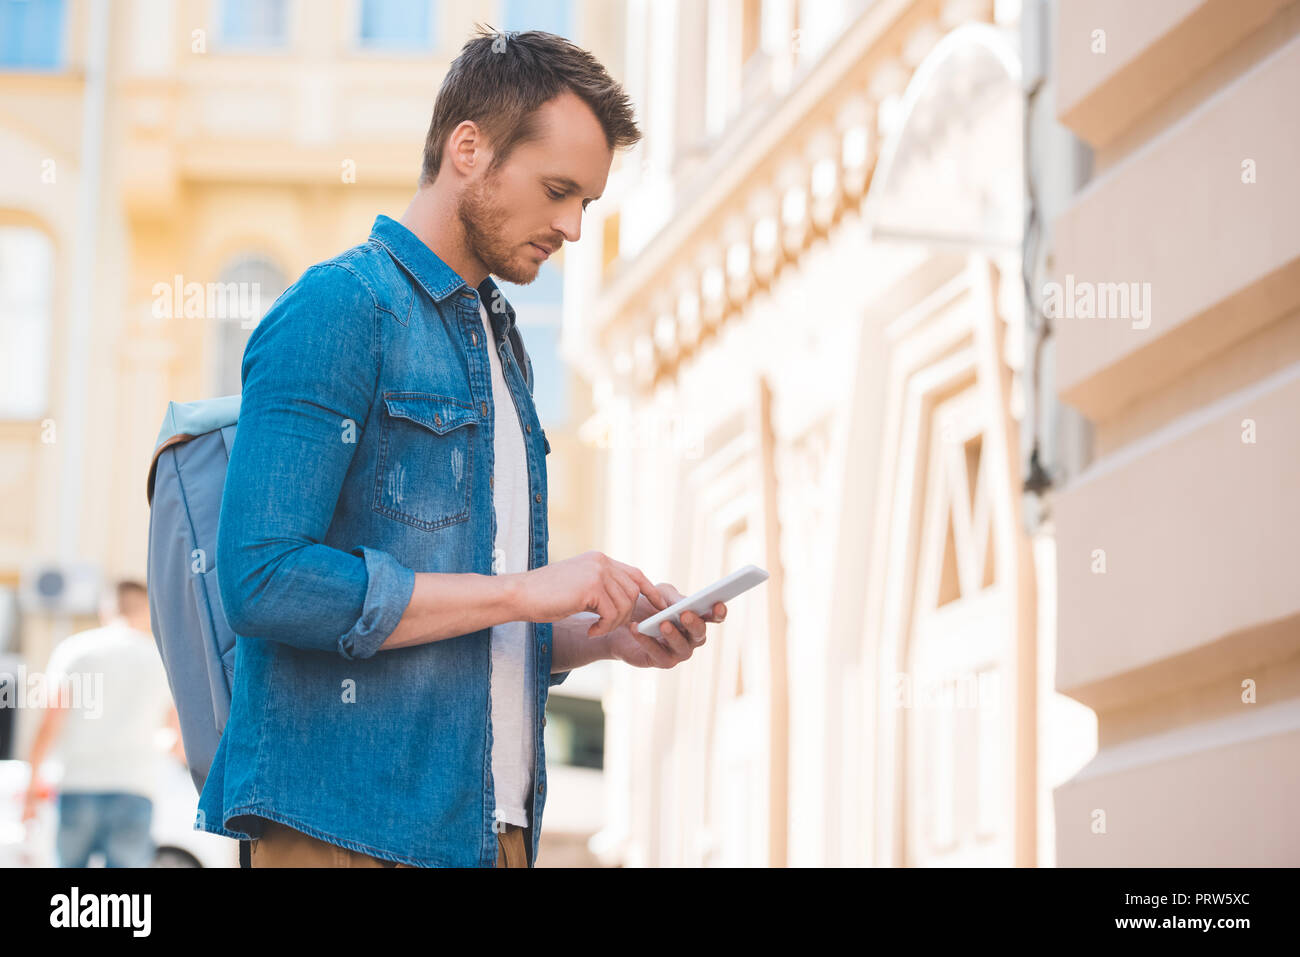 side view of man in denim shirt using smartphone on street - Stock Image